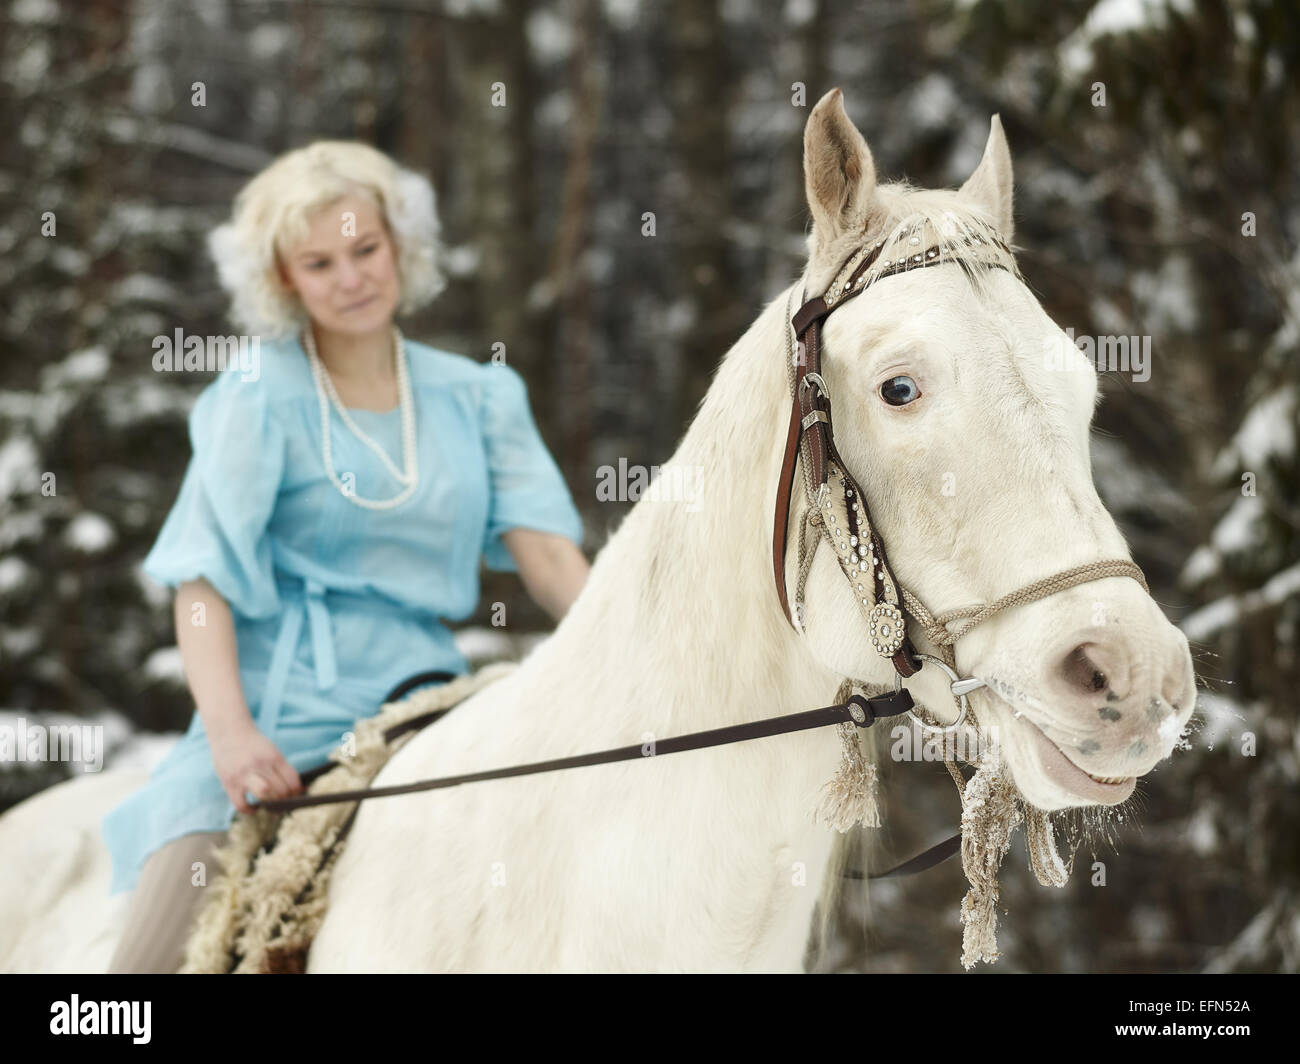 Attractive woman wearing blue dress and she riding a white horse, focus on horse eyes - Stock Image